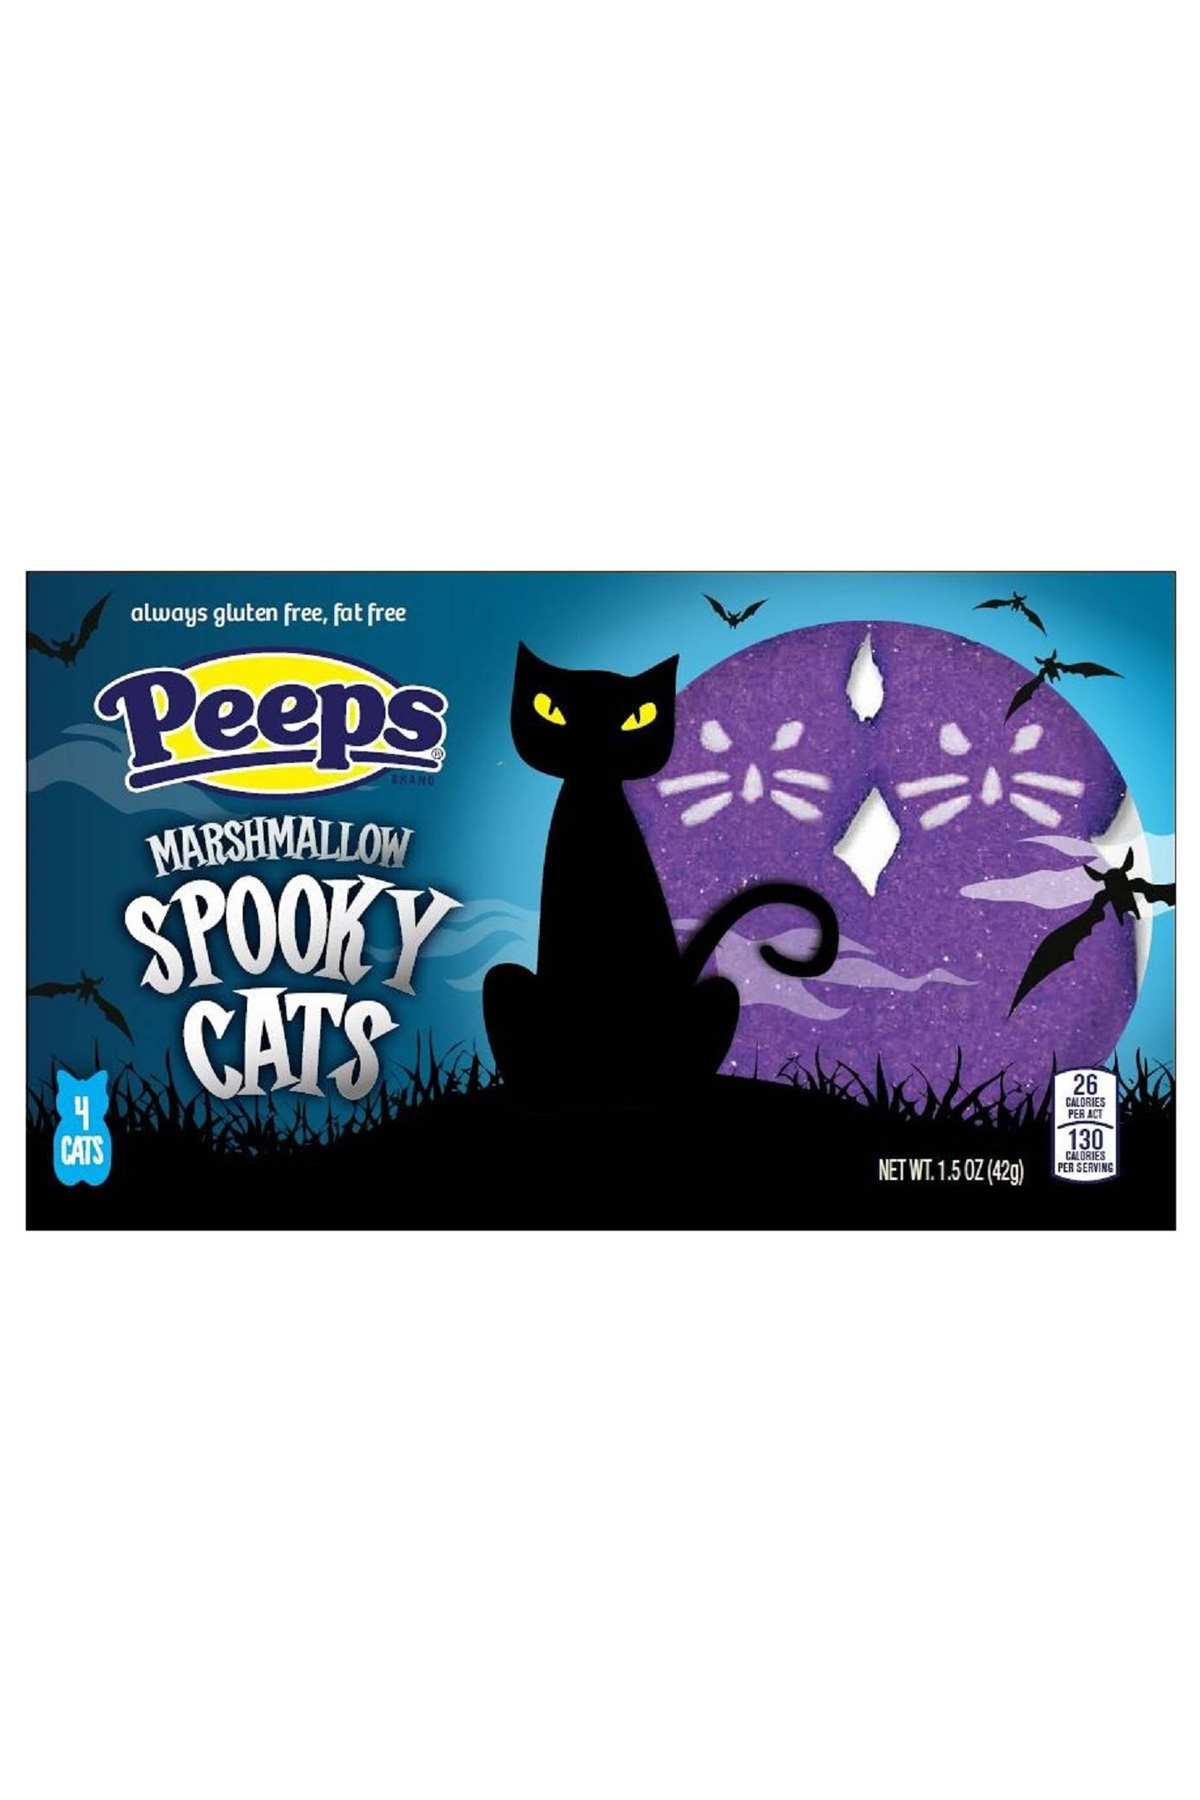 5 Spooktacular Halloween Candies